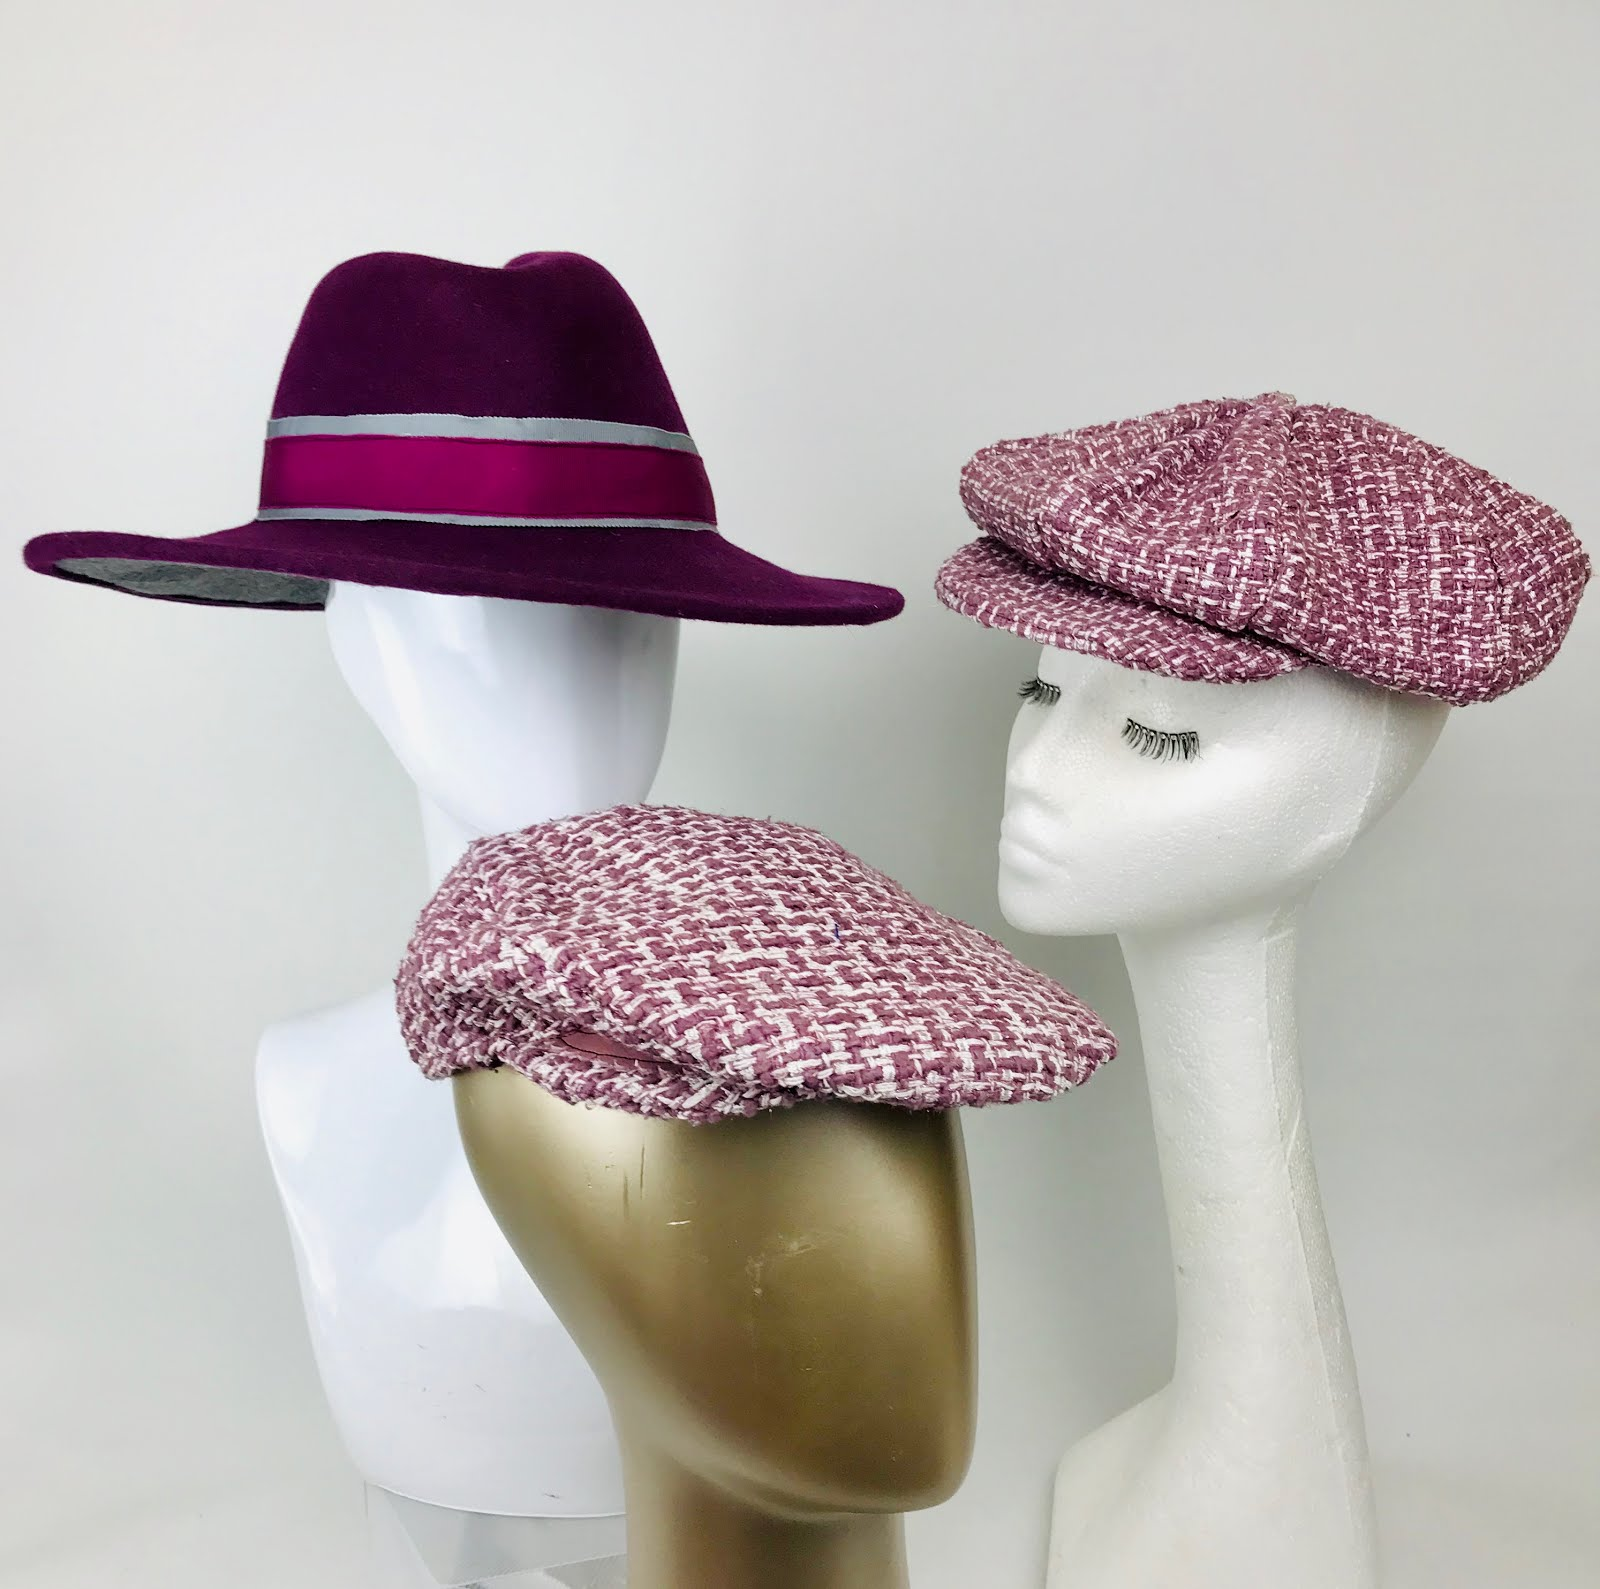 My hats in Etsy